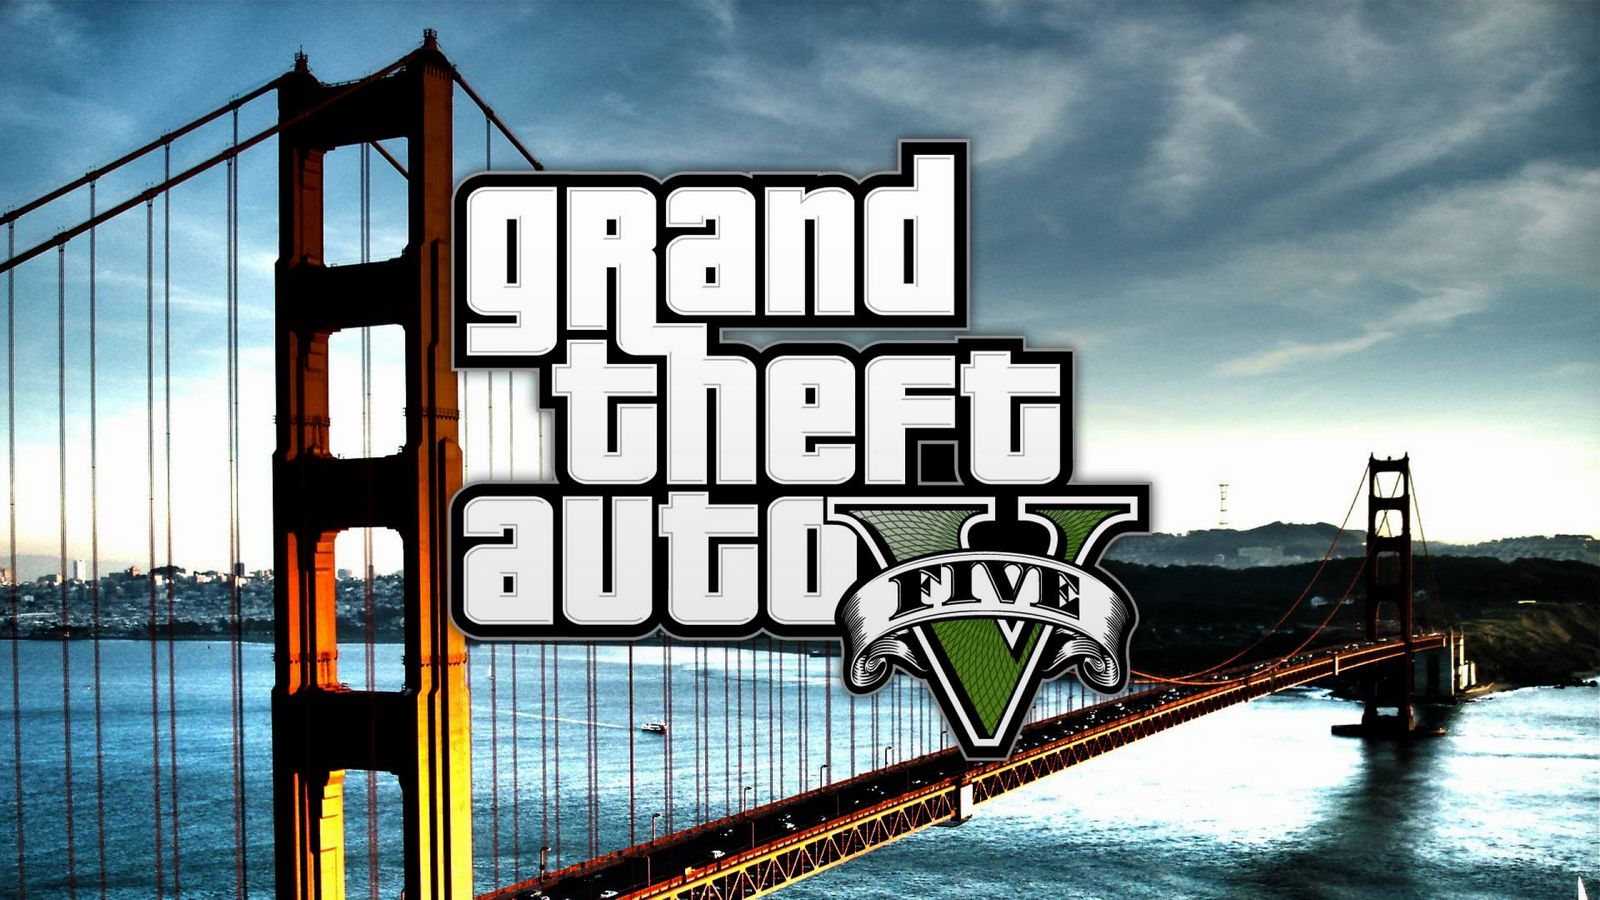 Best gta 5 wallpaper